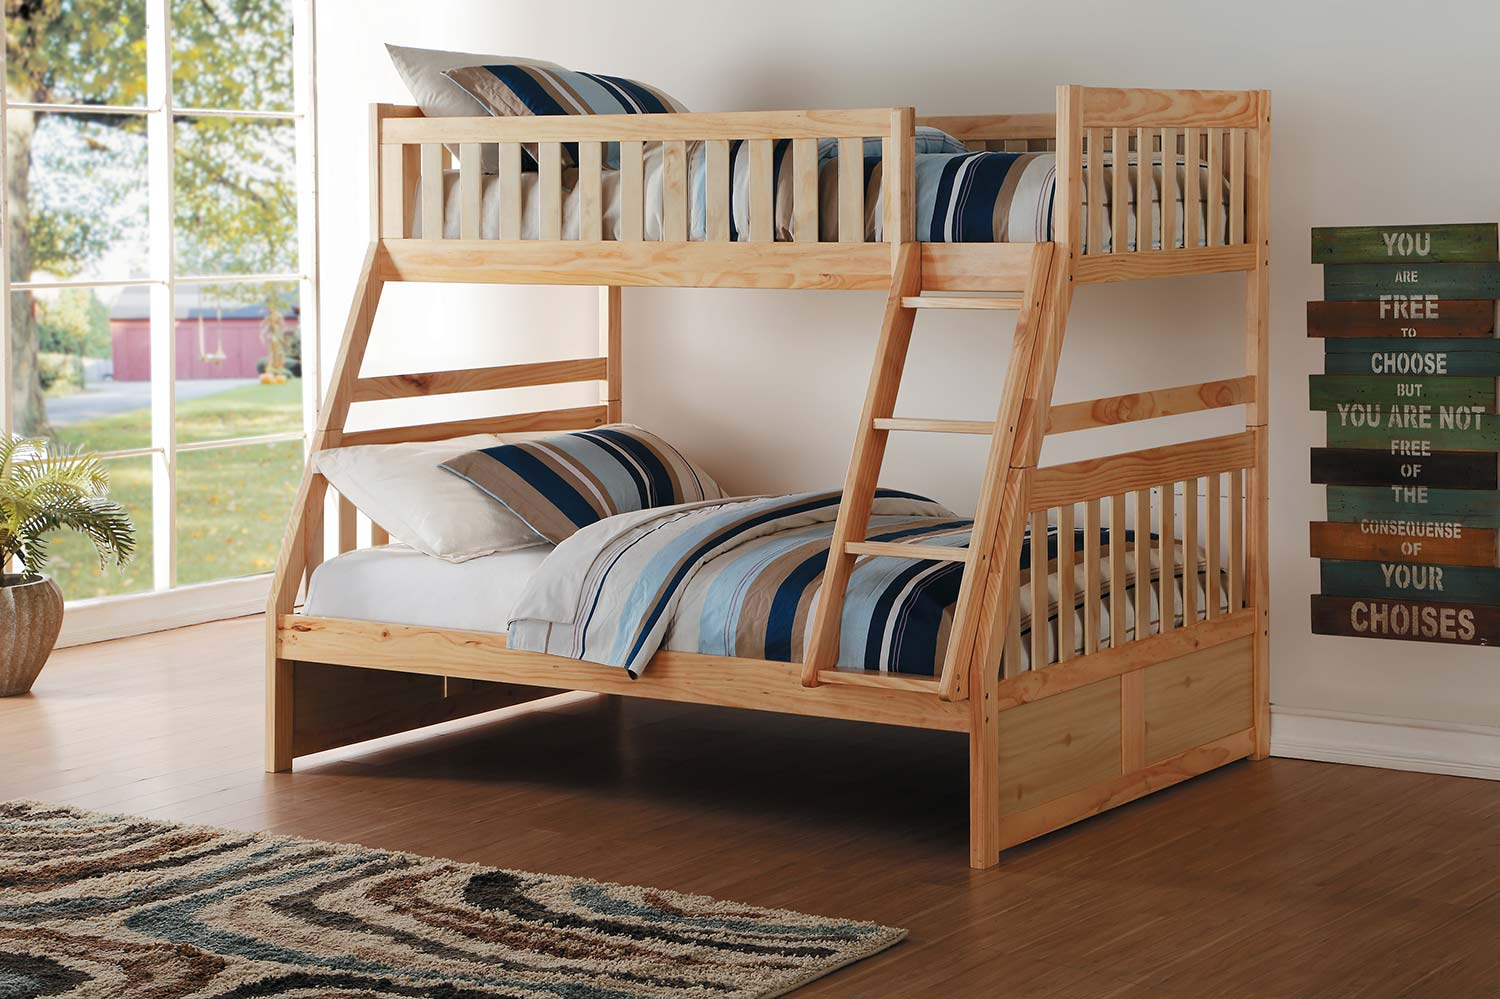 Homelegance Bartly Twin over Full Bunk Bed - Natural Pine